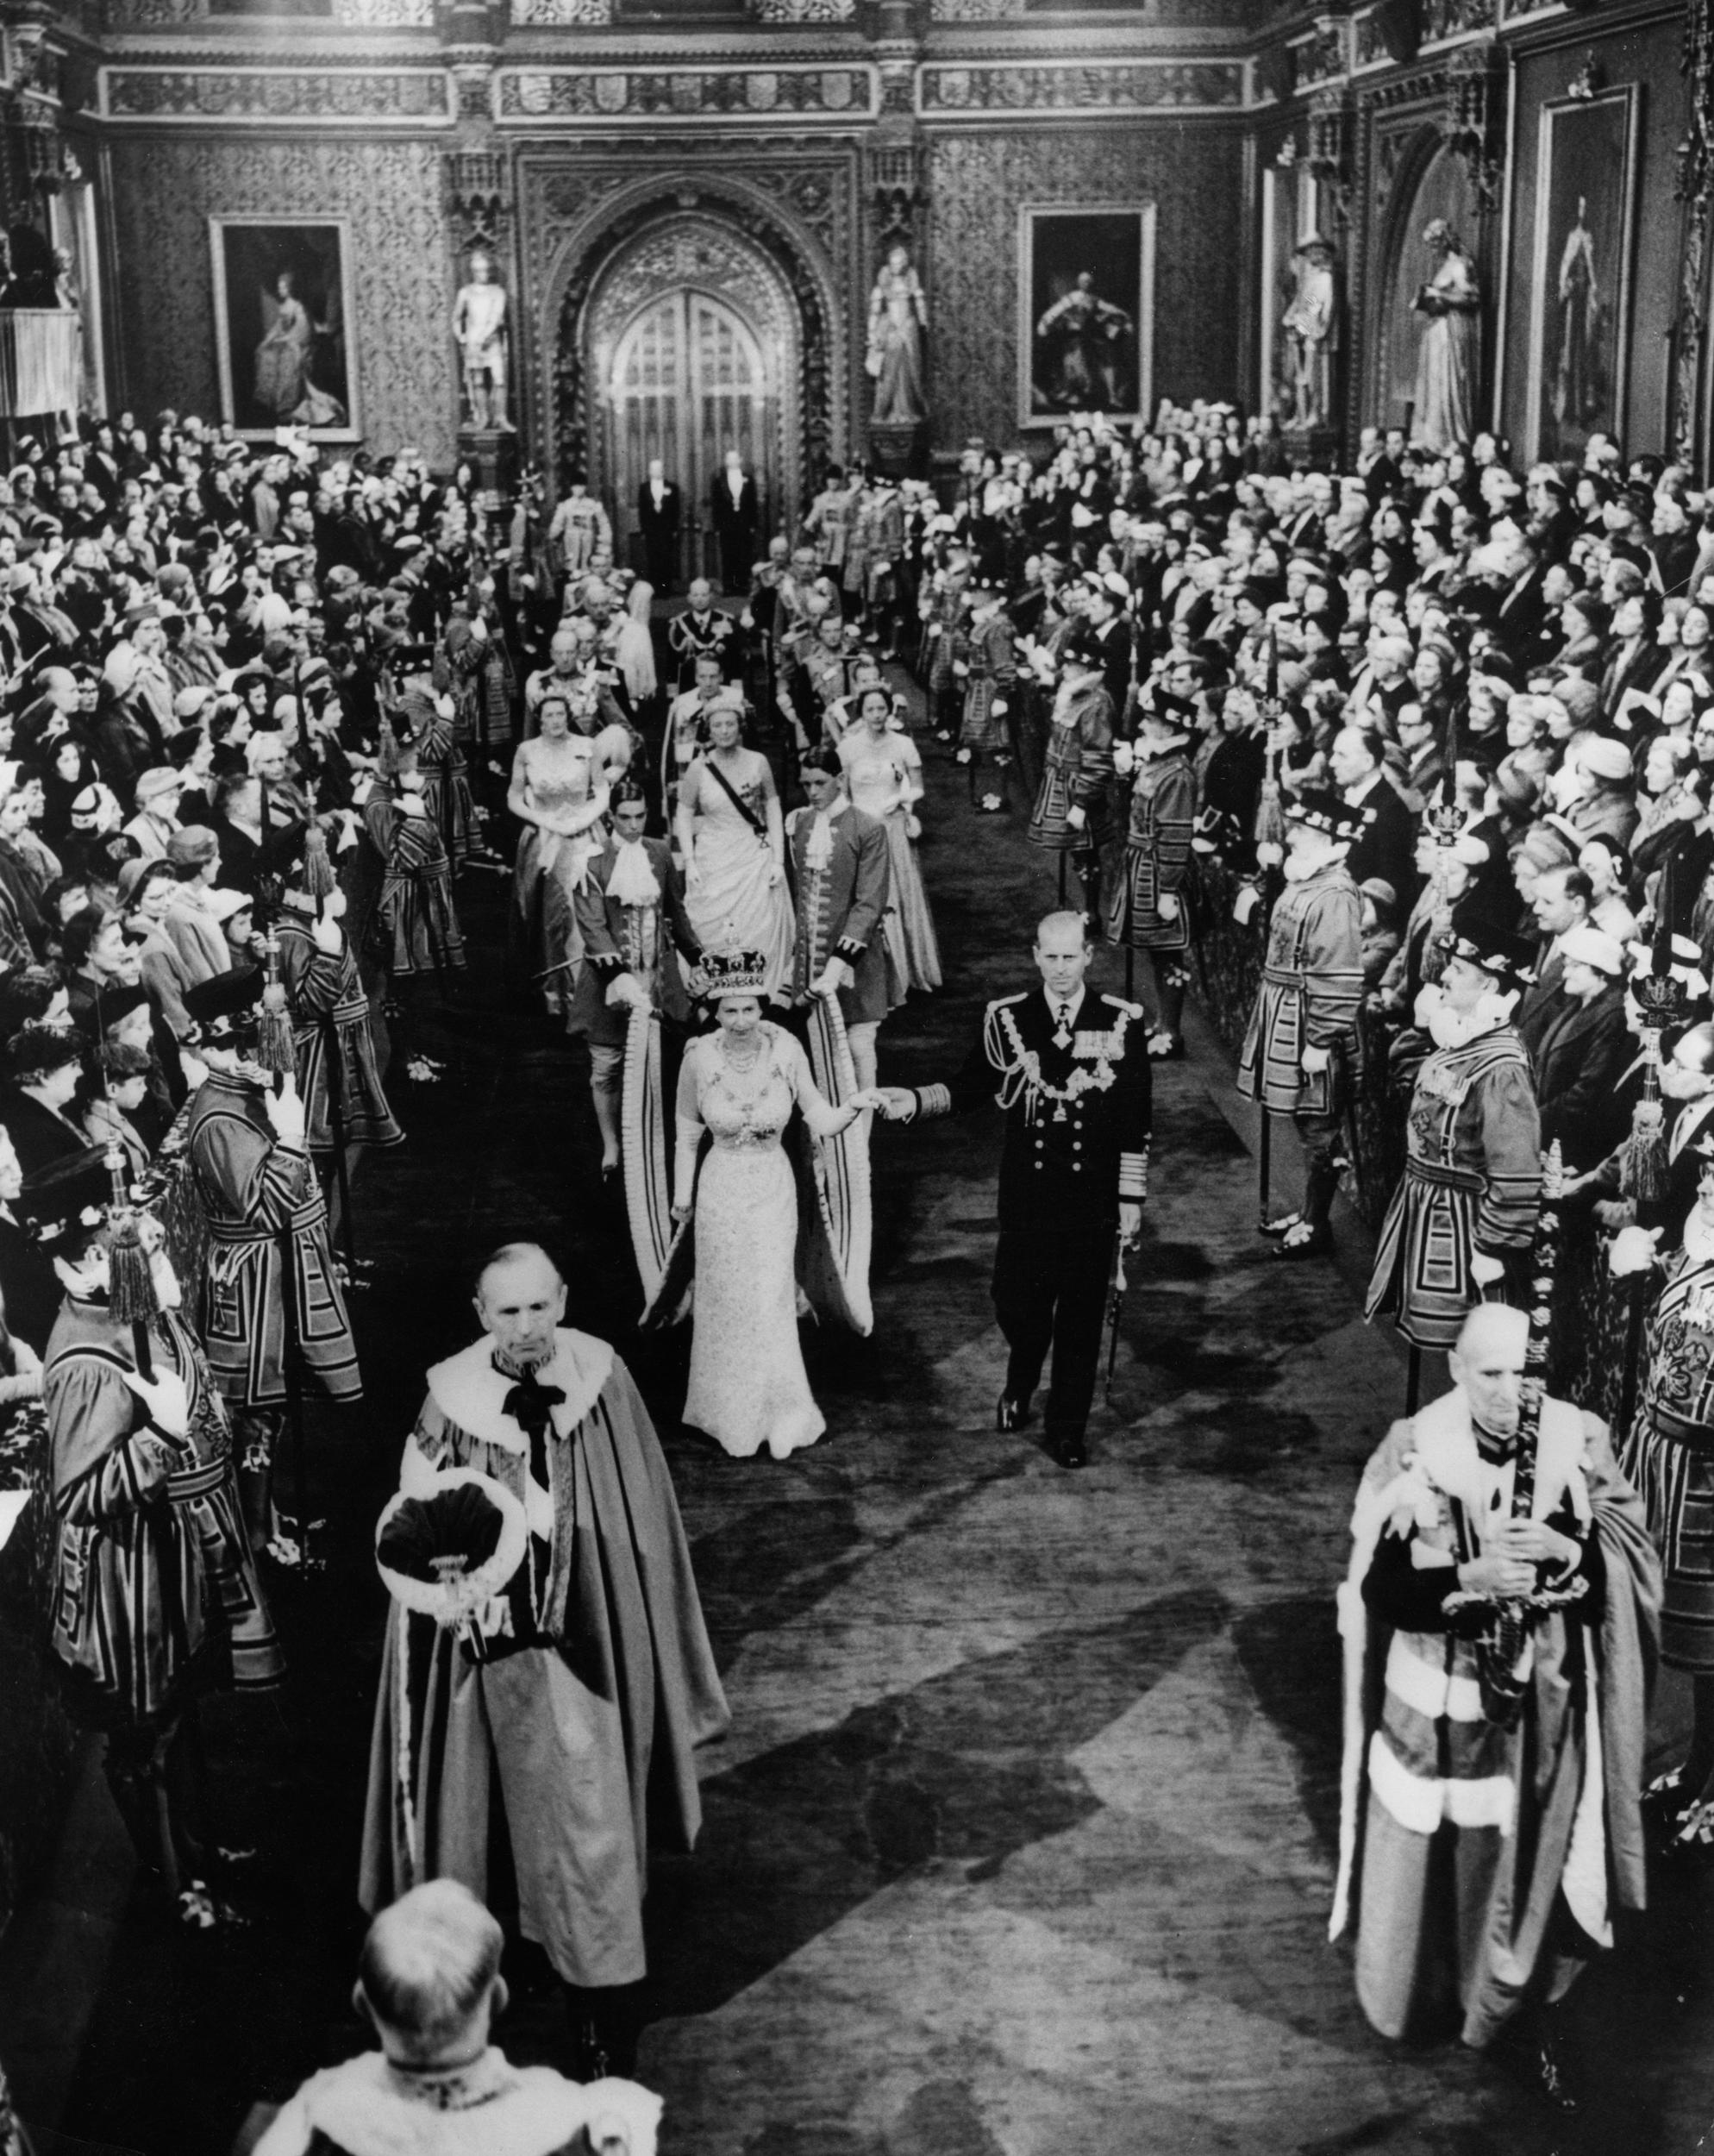 Queen Elizabeth II, accompanied by the Duke of Edinburgh, walks through the Royal Gallery from the Robing Room to the Chamber of the House of Lords at the State Opening of Parliament. It was the first time photographs of the ceremony were permitted and it was also televised for the first time.